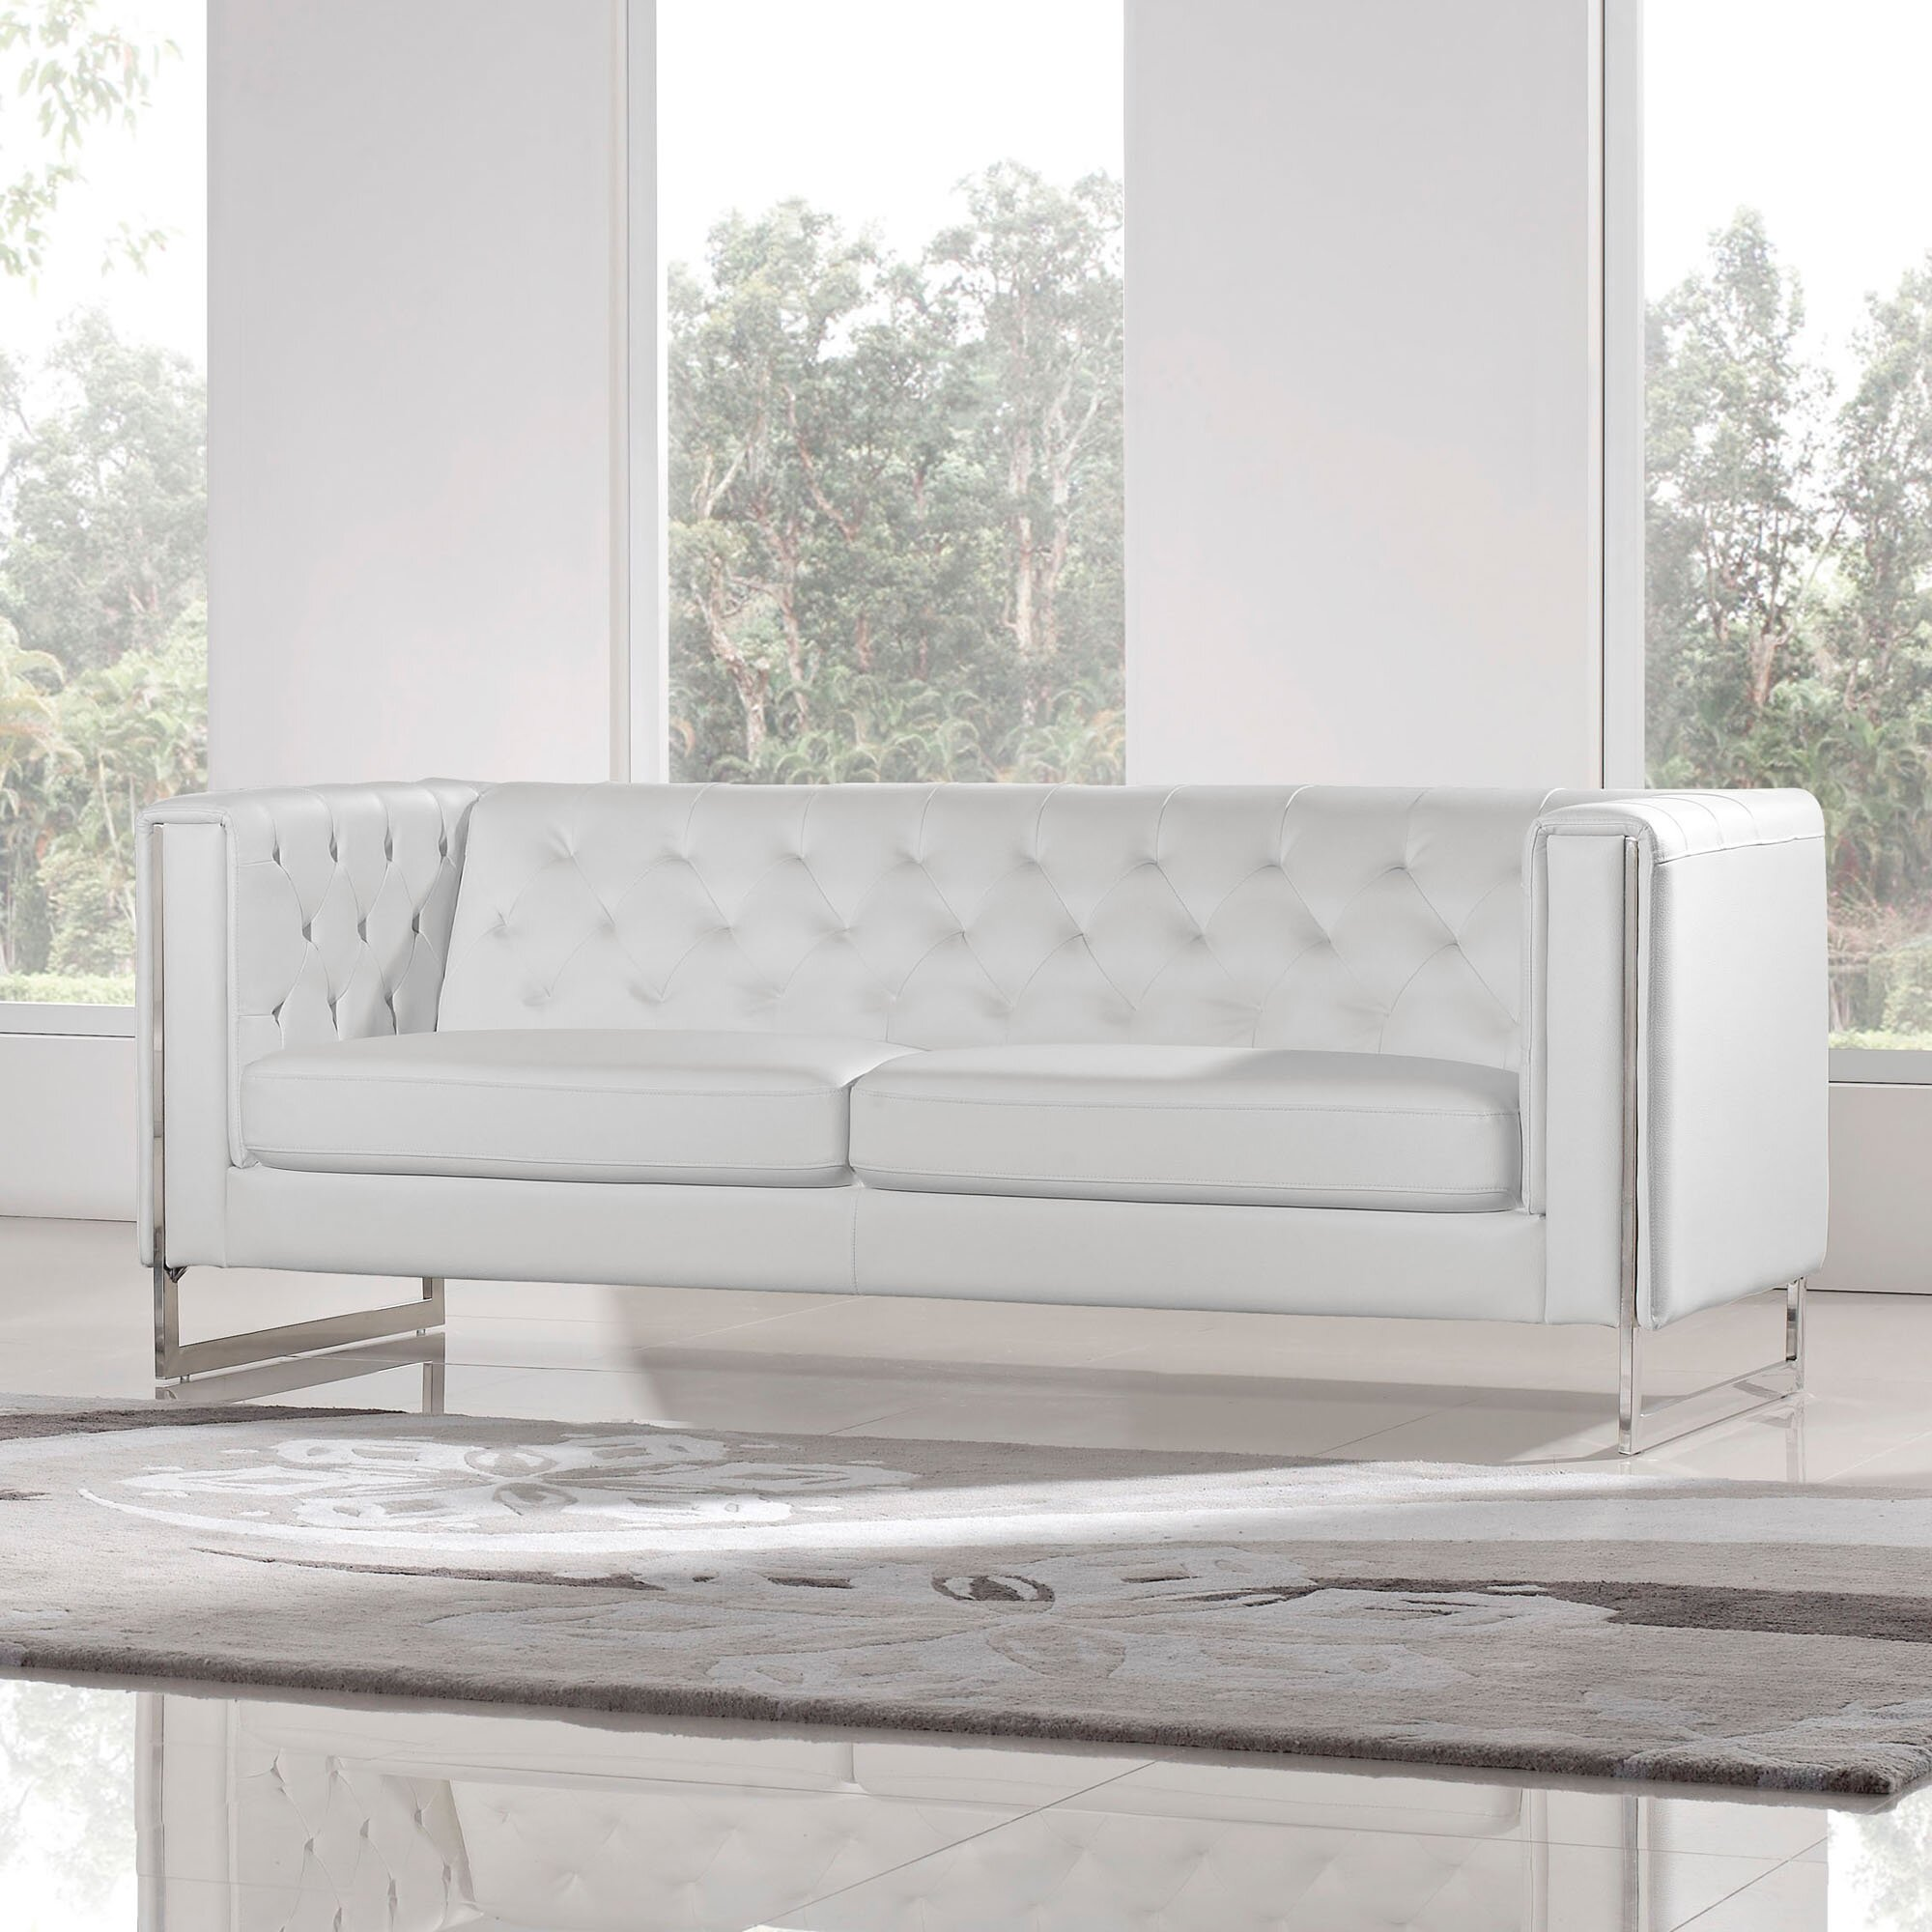 products home twill slipcover strapless slip stretch by fit form great tori bay diamond collection furniture resistant slipcovers sofa